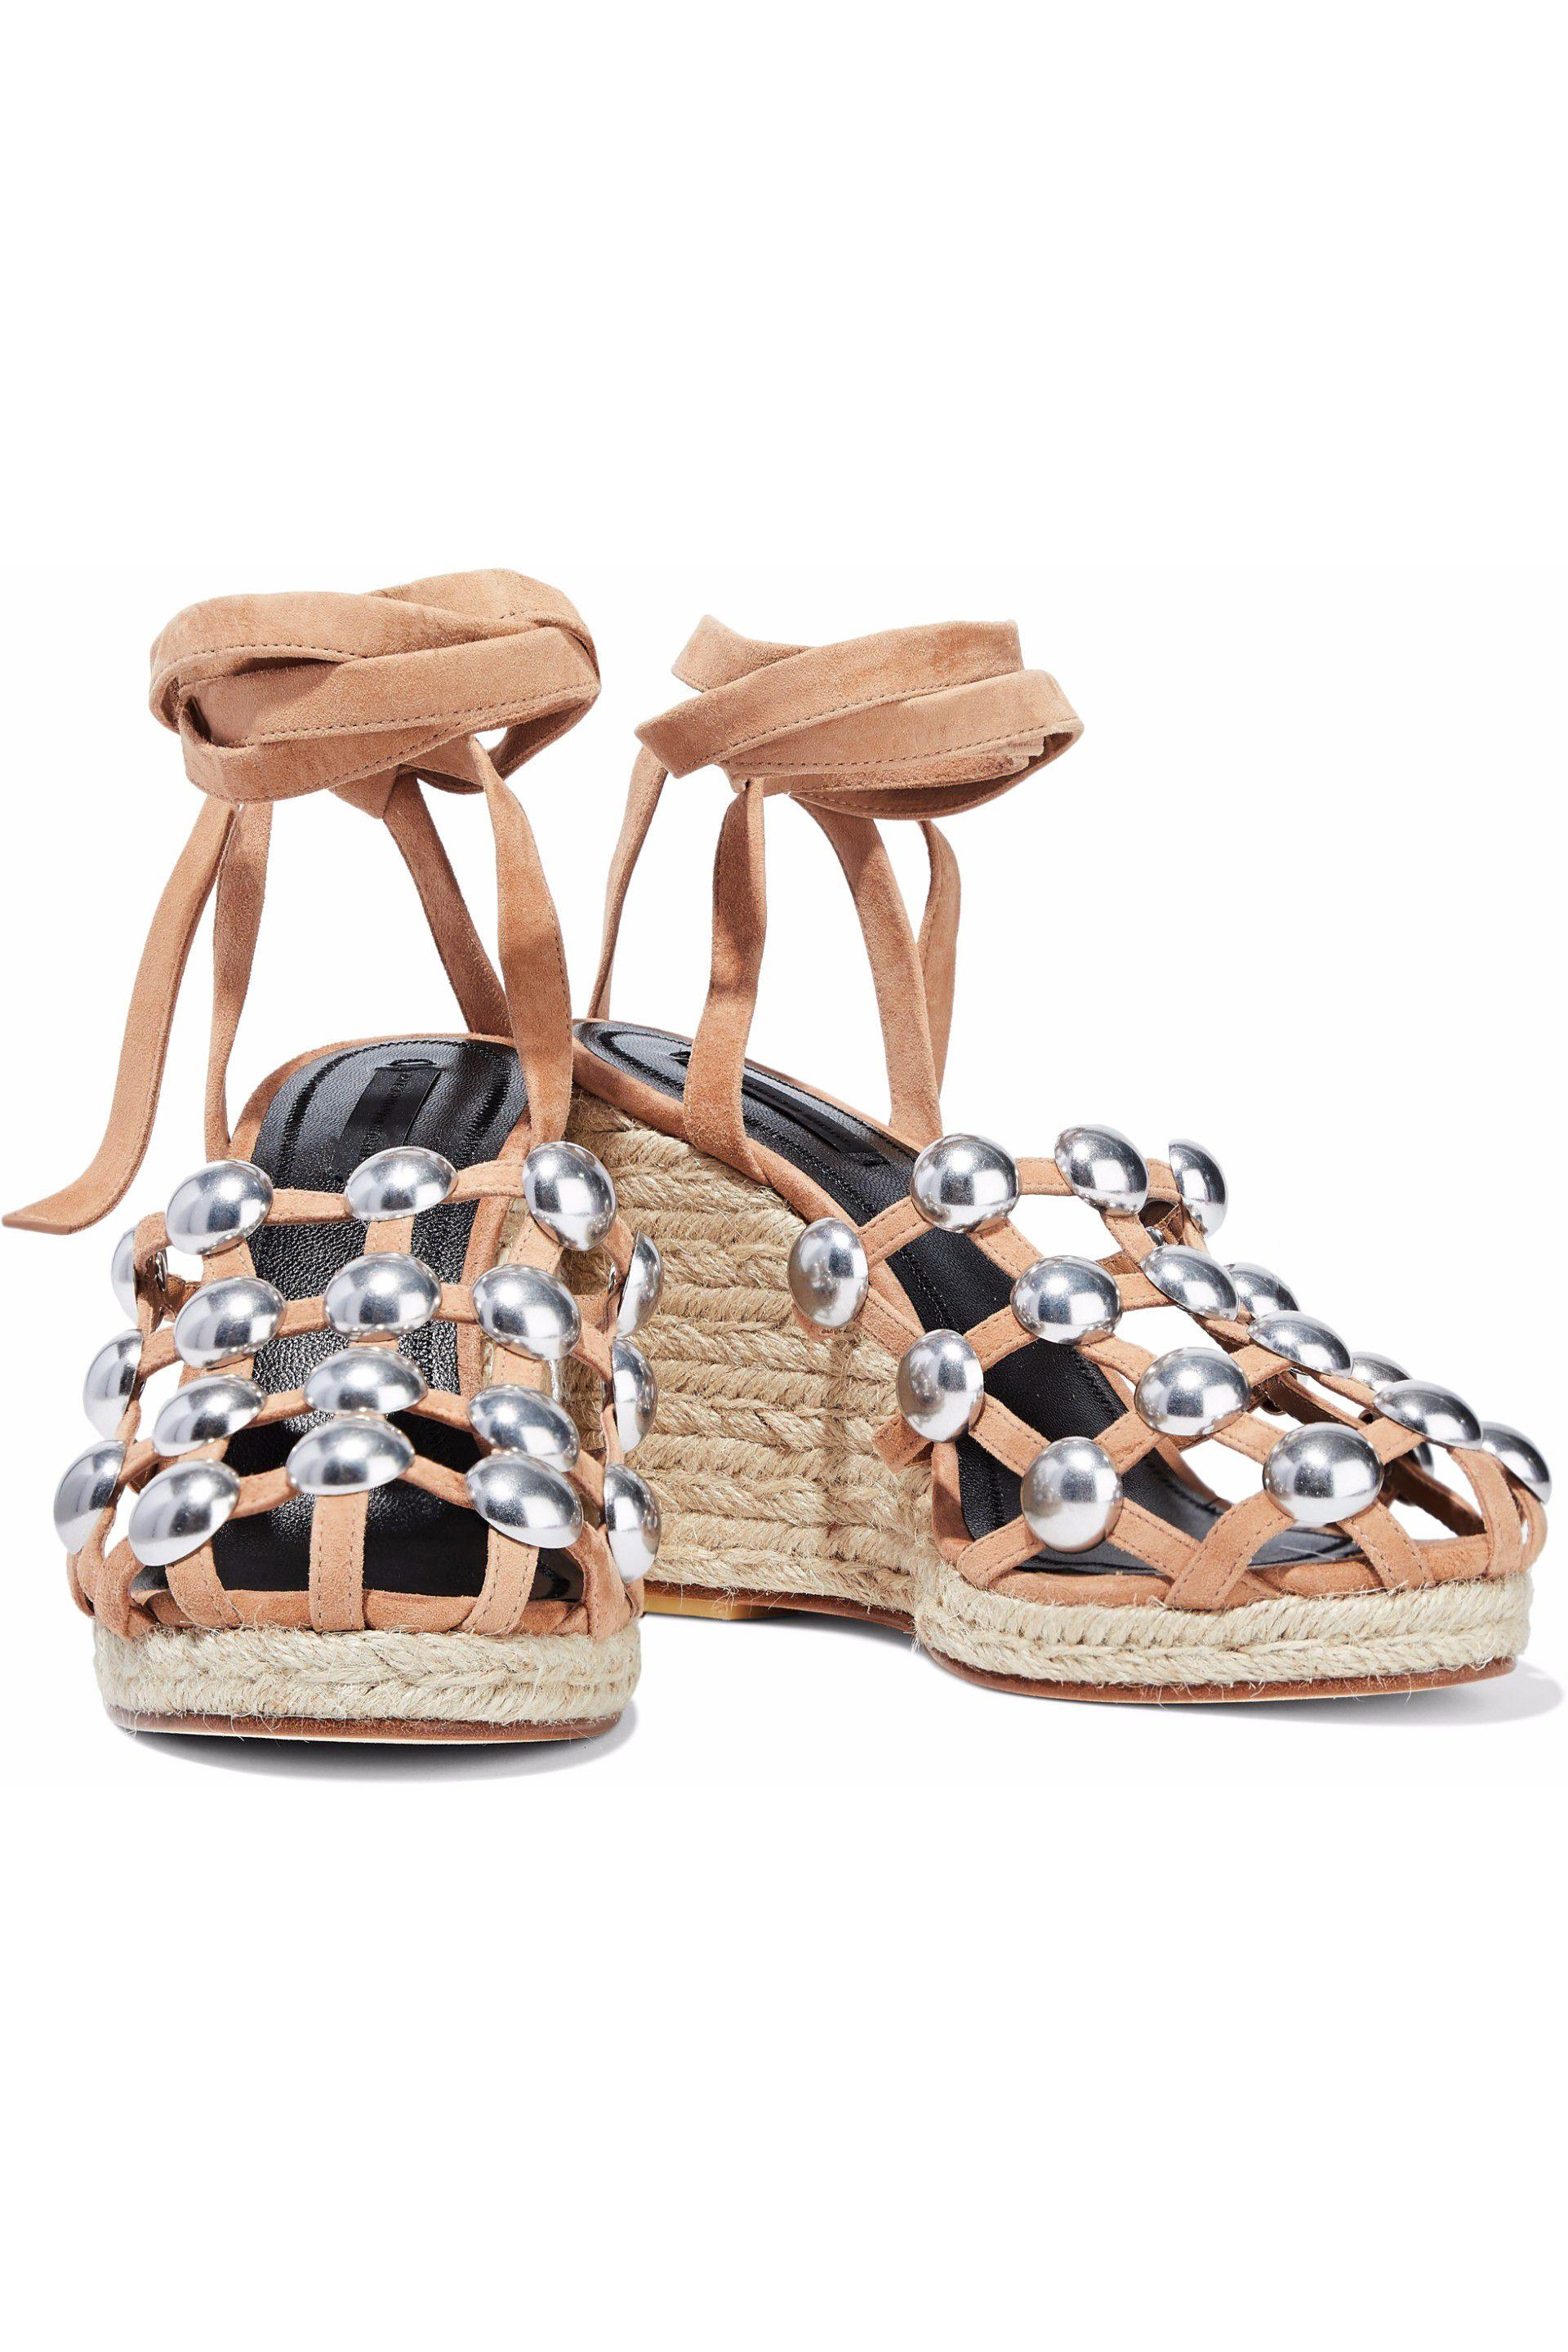 ddb7df33418e Alexander Wang - Multicolor Woman Taylor Studded Suede Espadrille Wedge  Sandals Sand - Lyst. View fullscreen